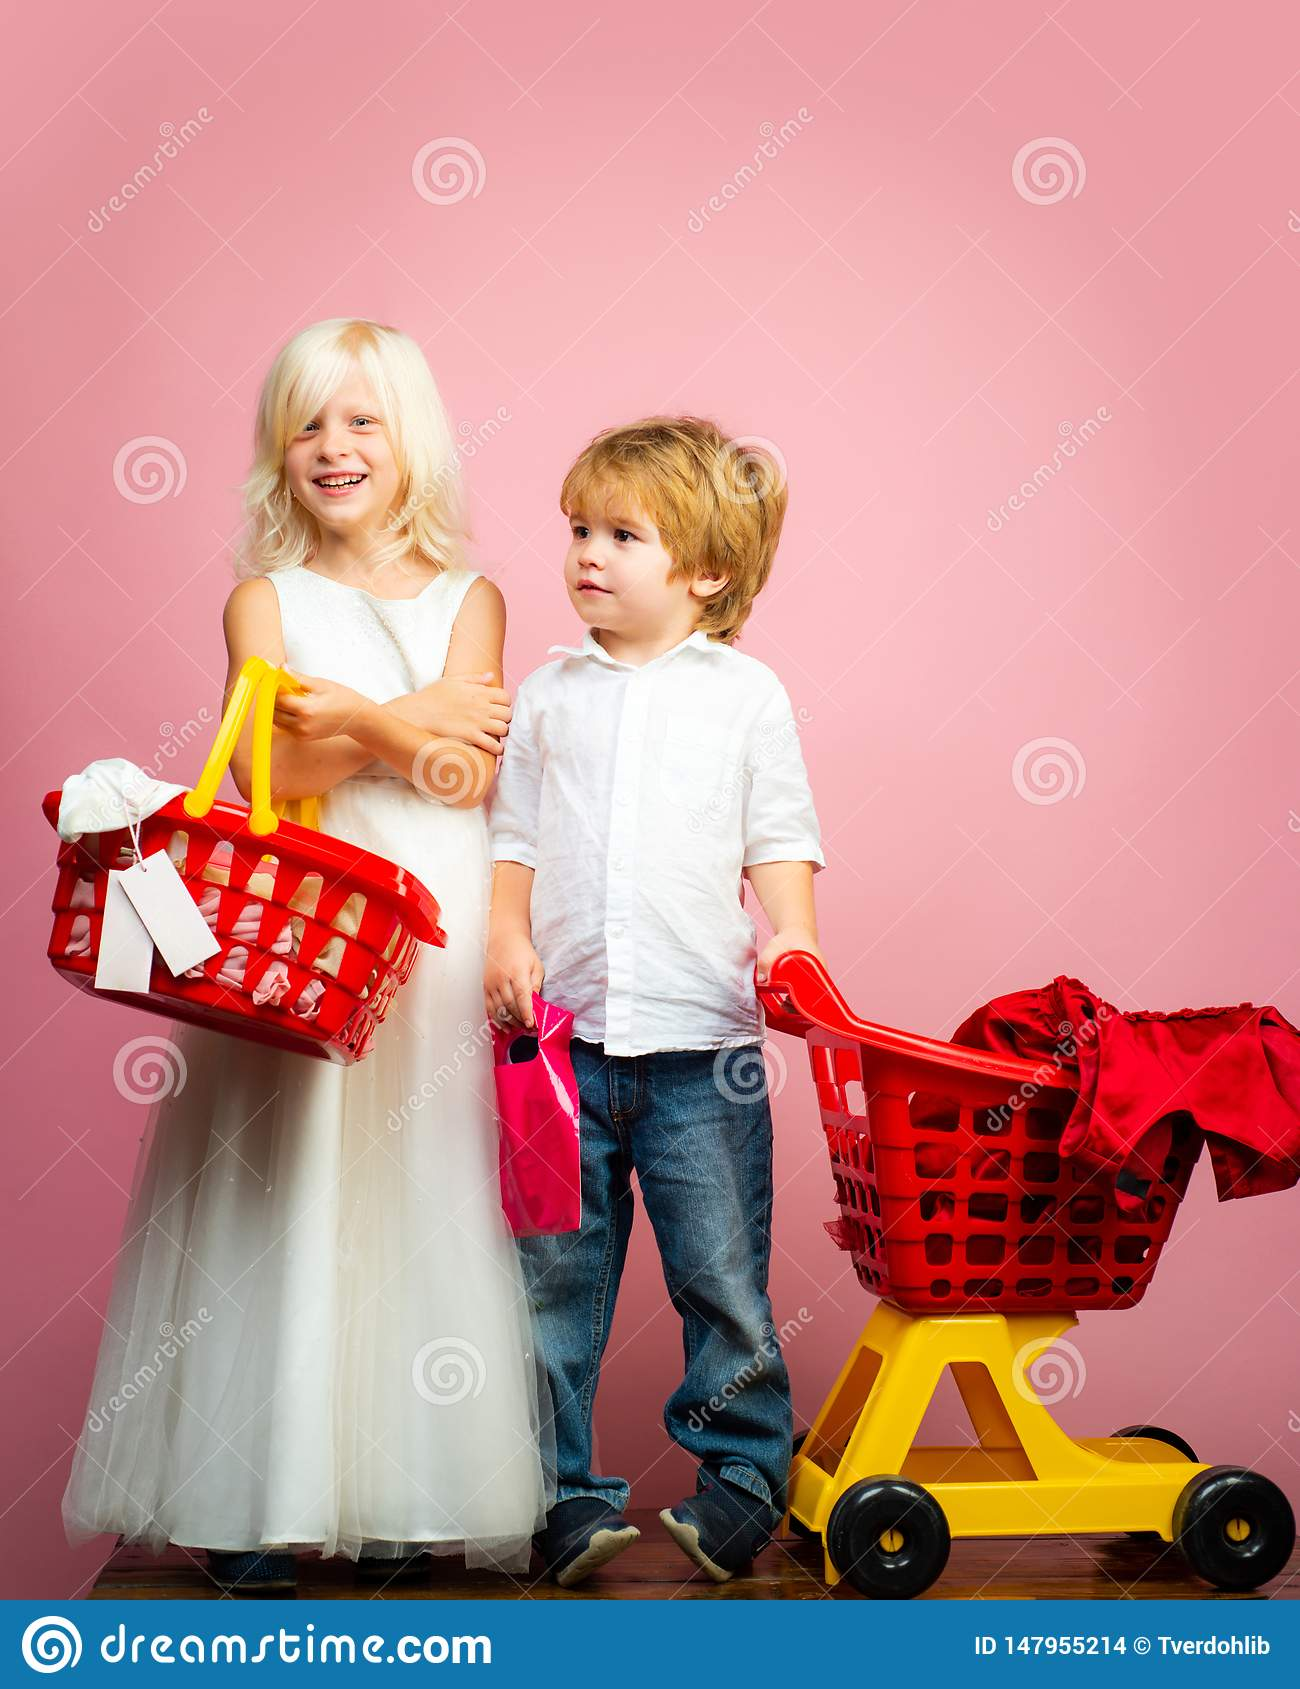 Girl and boy children shopping. Couple kids hold plastic shopping basket toy. Kids store. Mall shopping. Buy products